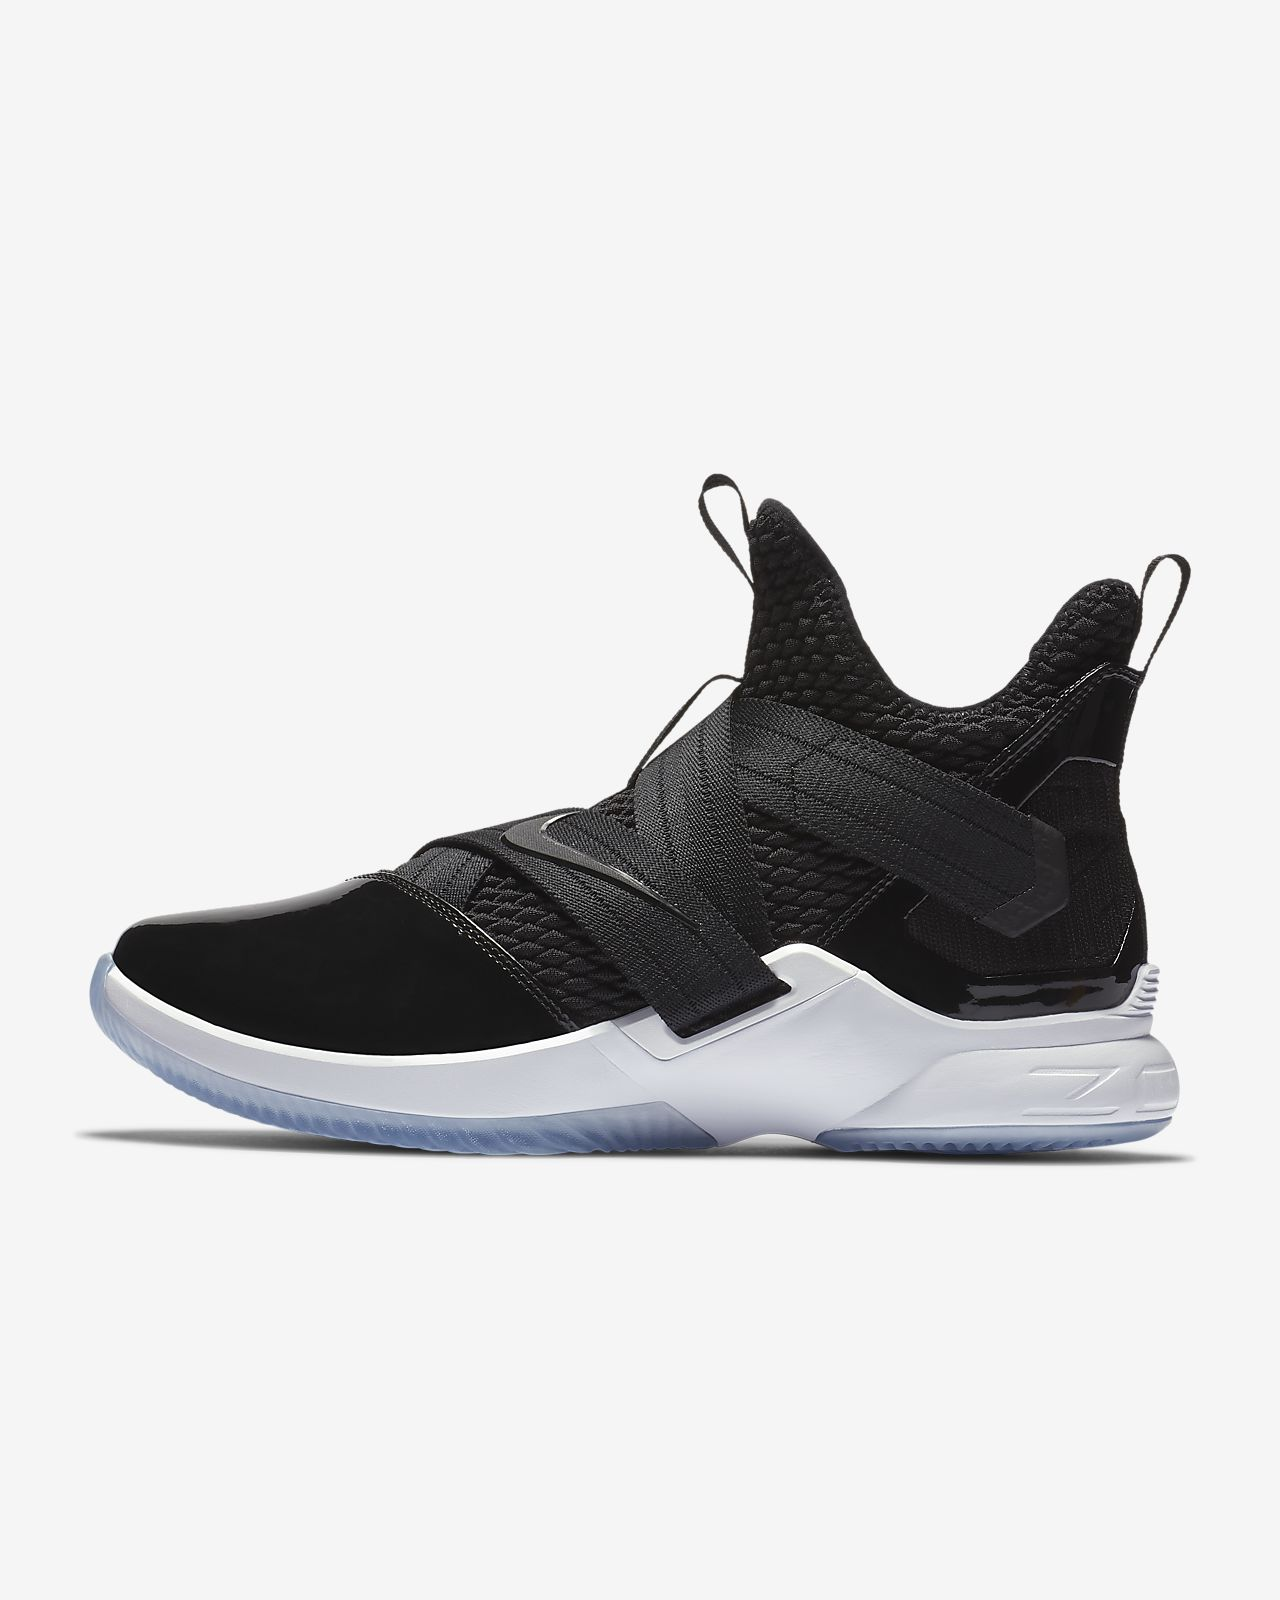 wholesale dealer 34921 13756 ... LeBron Soldier 12 SFG Basketball Shoe